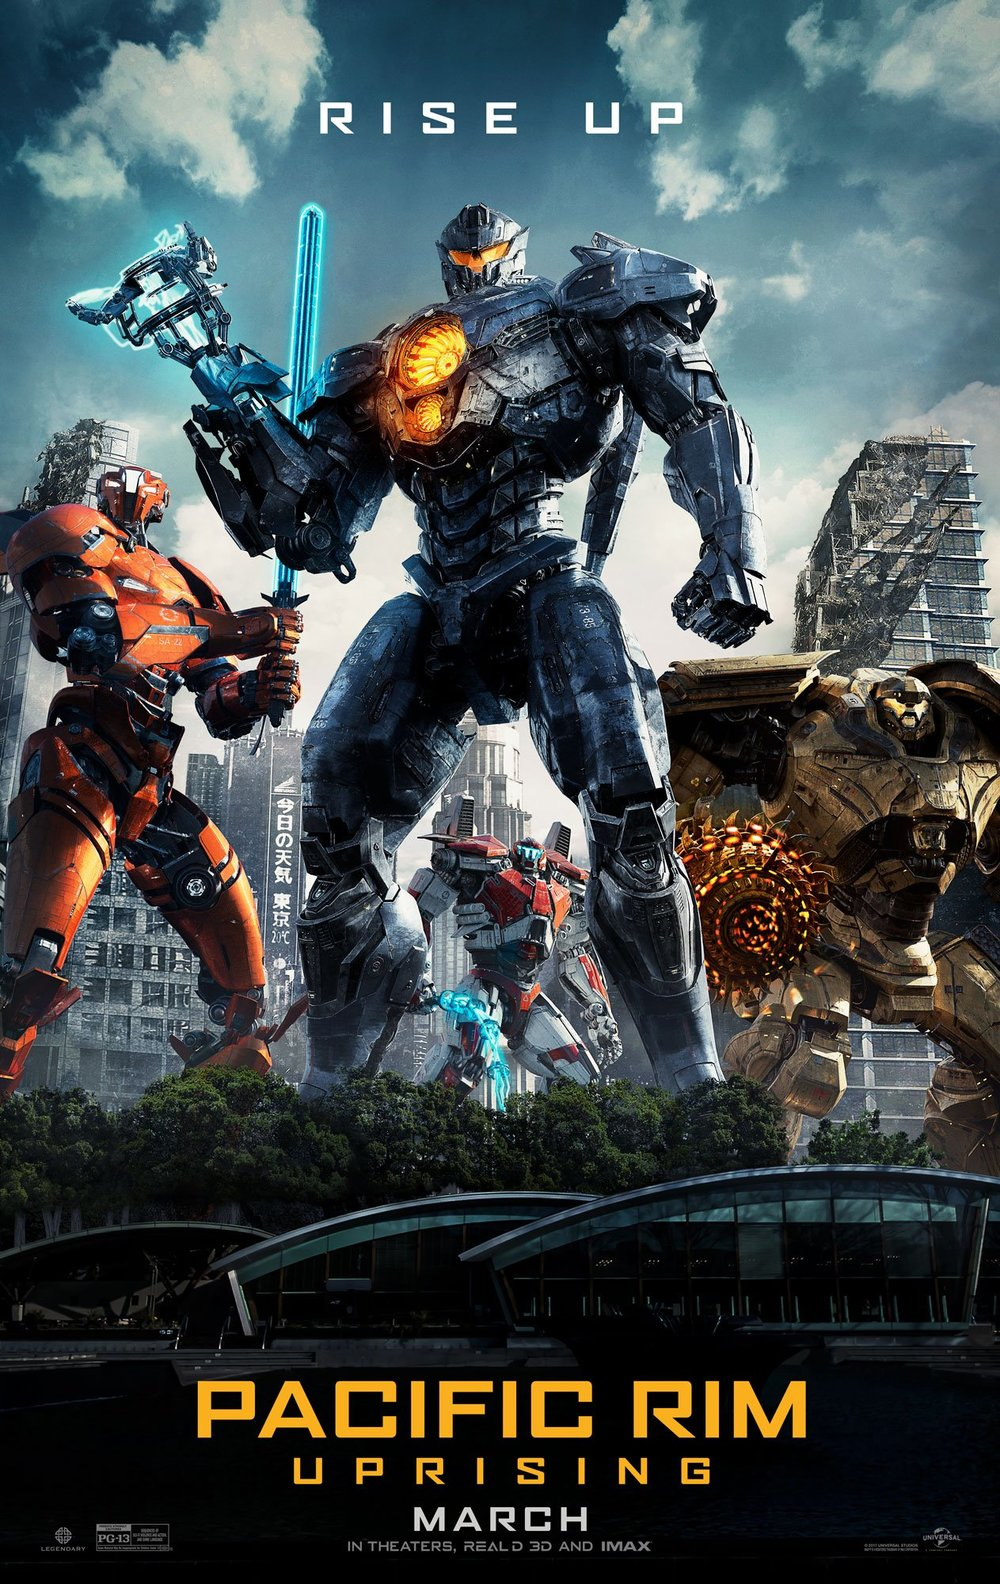 Pacific Rim Uprising   (2018) dir. Steven S. DeKnight Rated: PG-13 image: ©2018  Universal Pictures